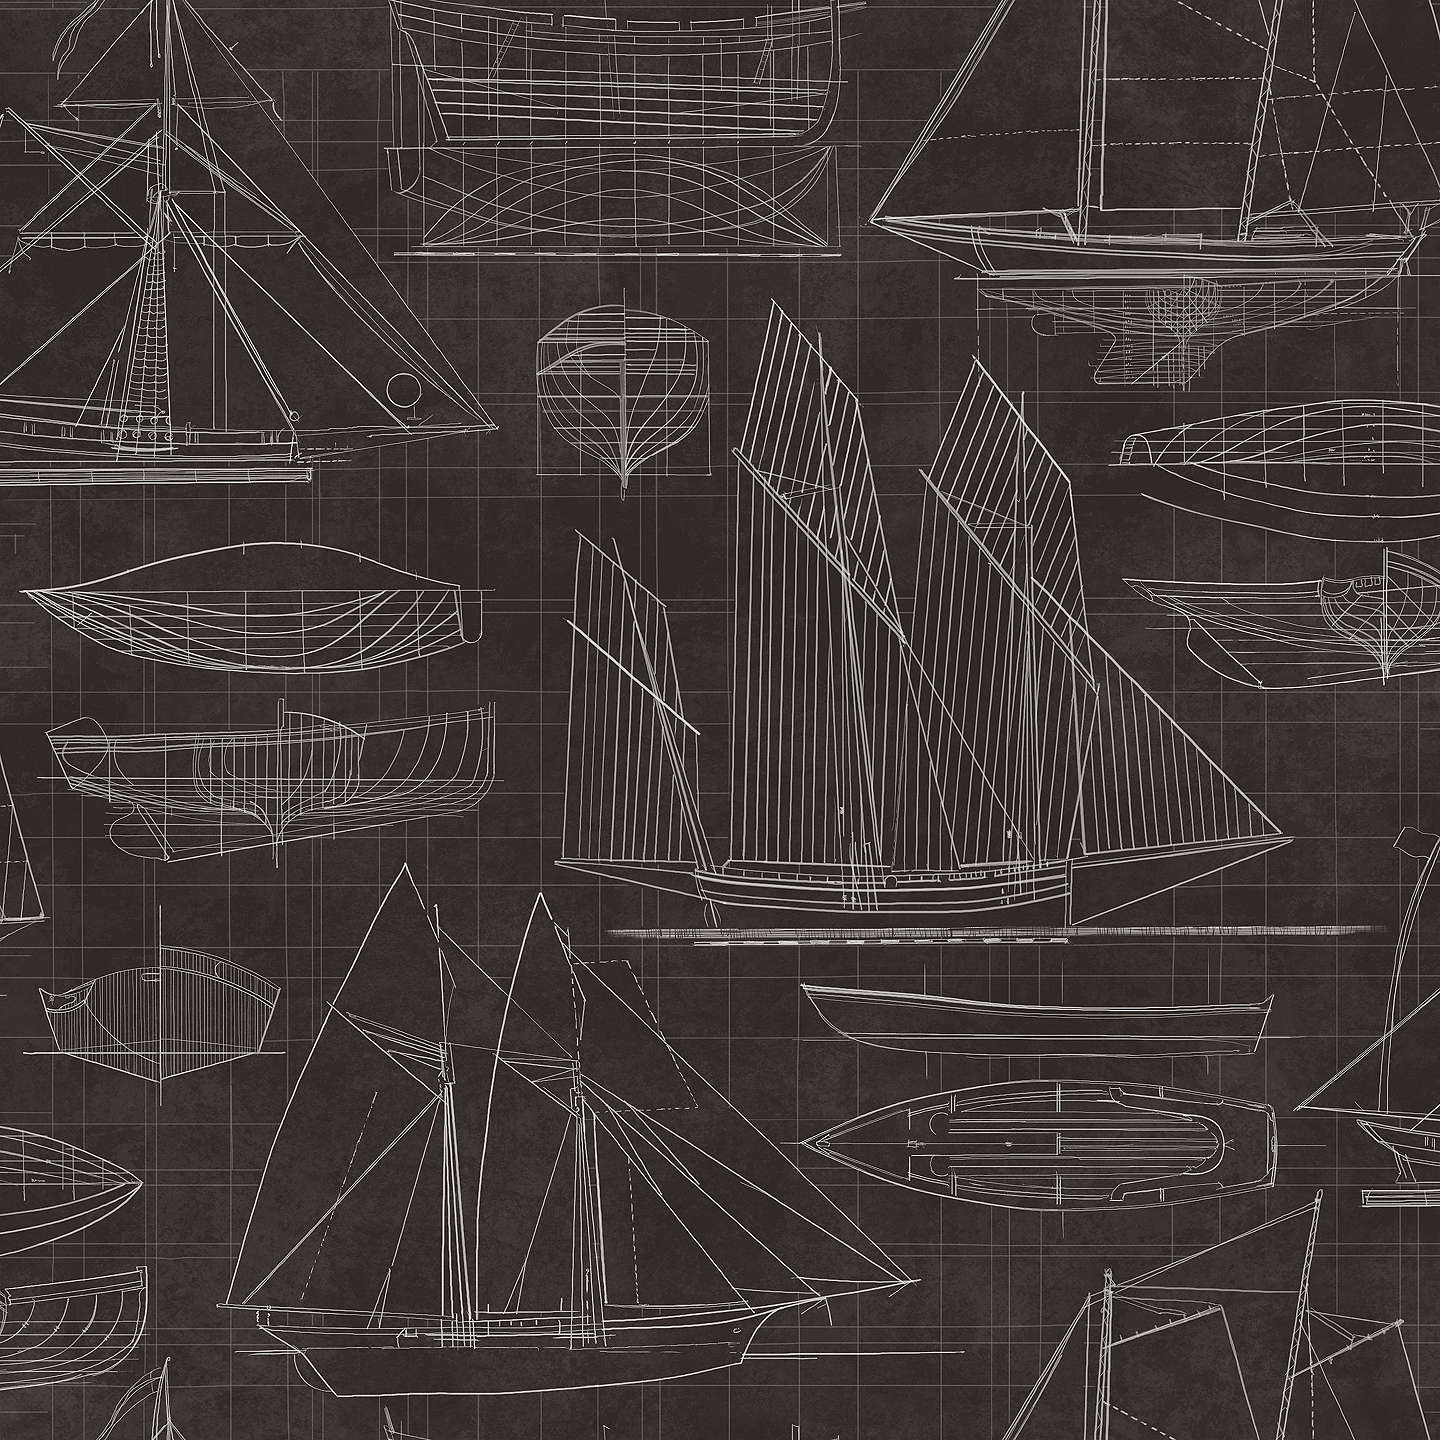 Galerie nautical blueprint wallpaper at john lewis buygalerie nautical blueprint wallpaper g23323 online at johnlewis malvernweather Choice Image